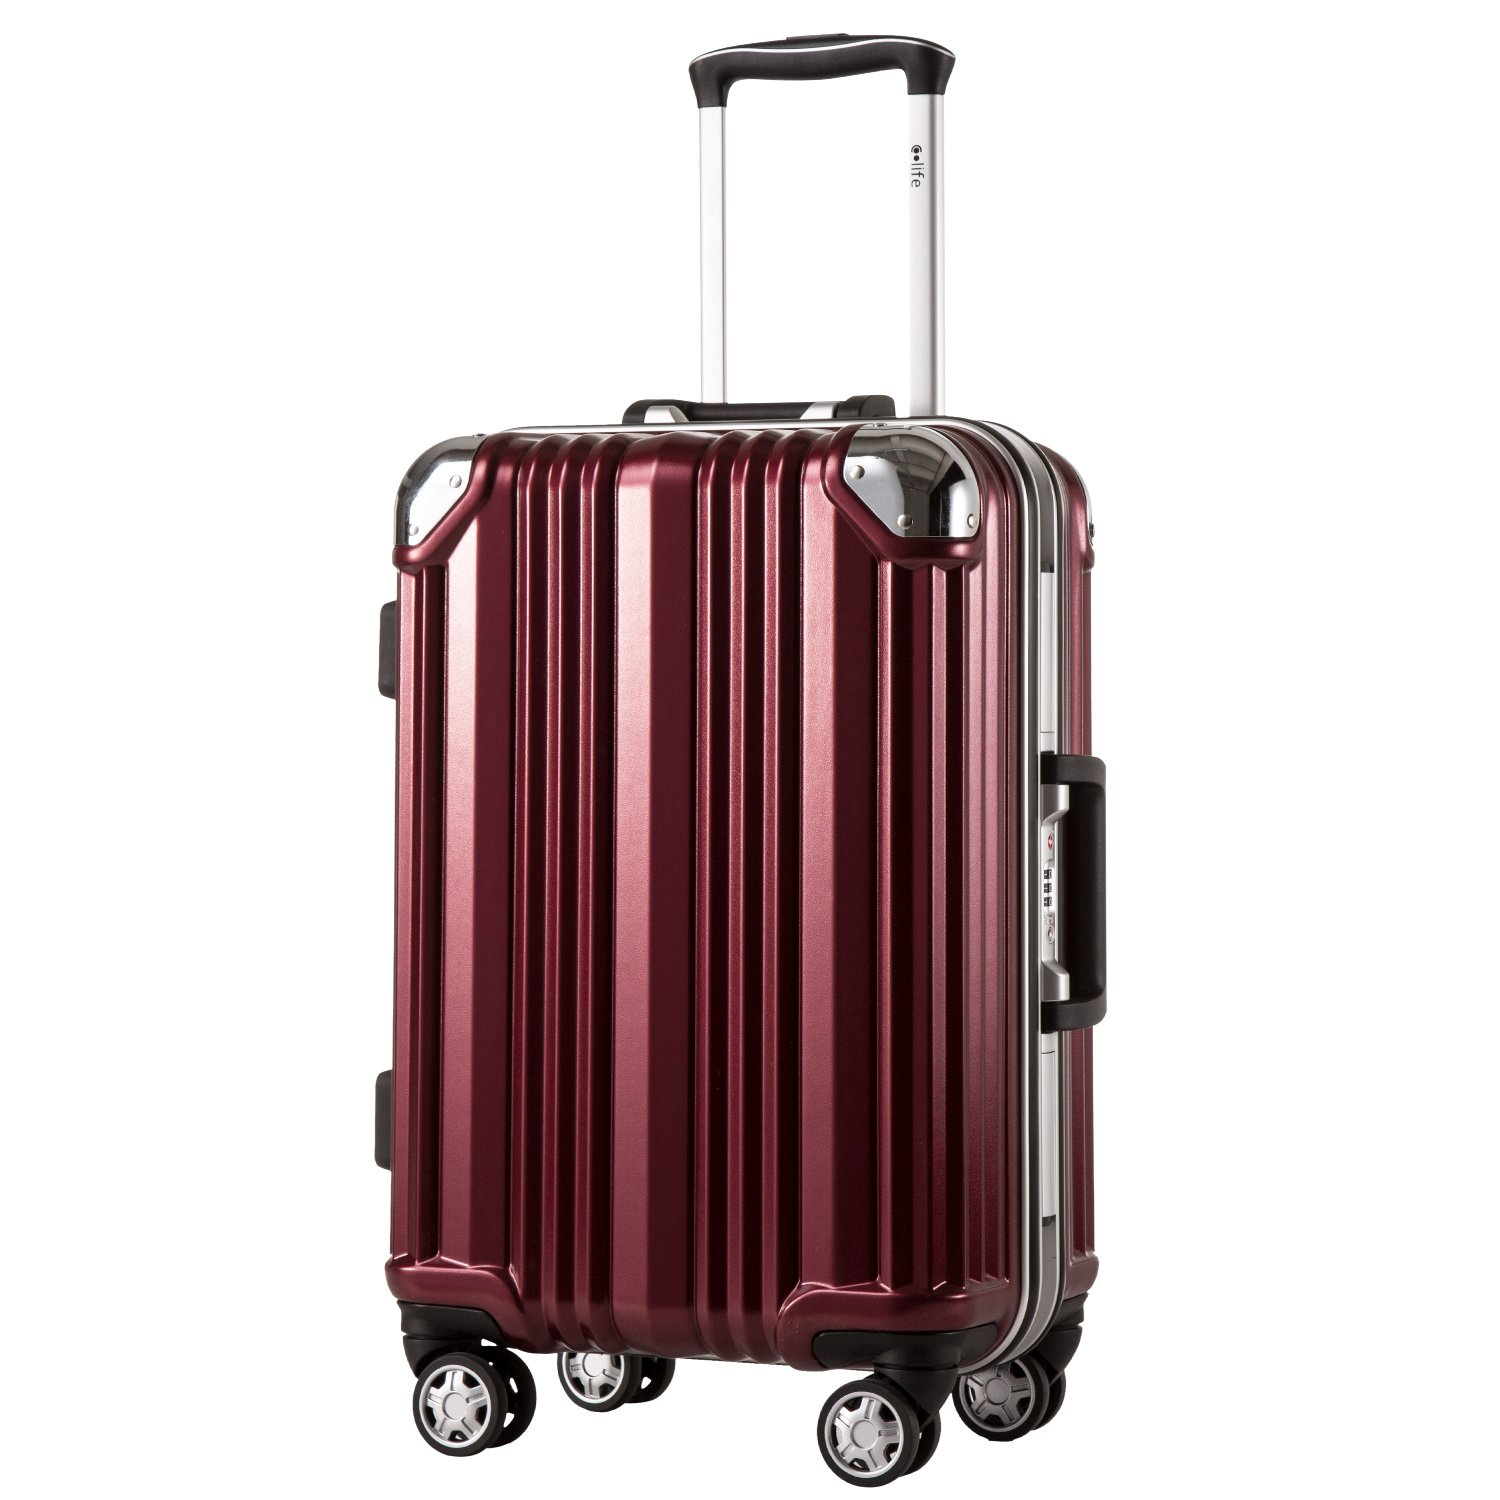 Coolife Luggage Aluminium Frame Suitcase with TSA Lock 100% PC (M(24in), Wine red) by COOLIFE